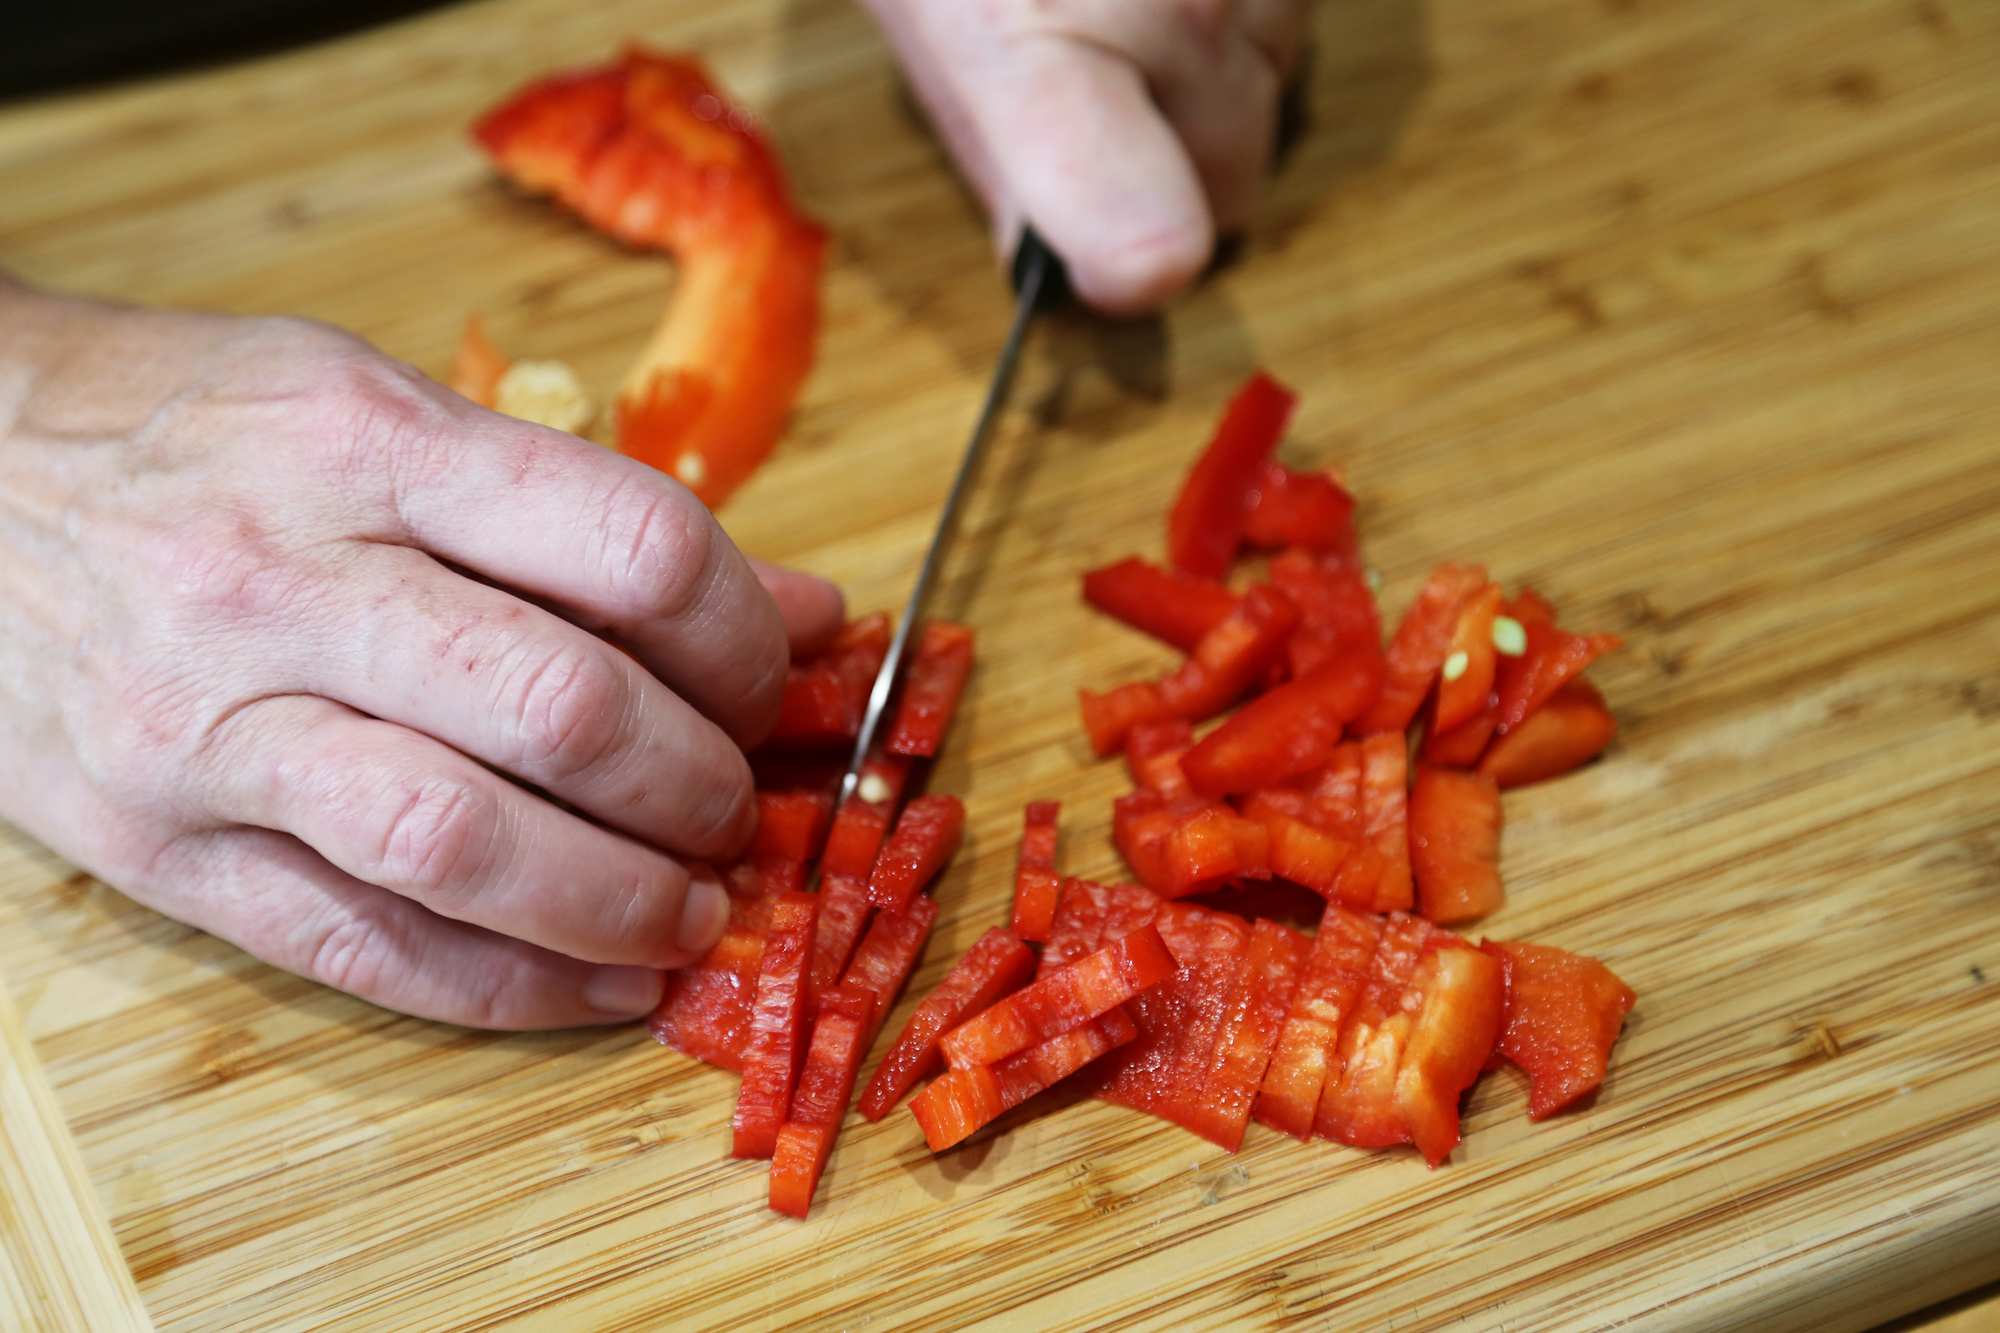 Seed and cut red bell pepper into thin 1-inch strips.